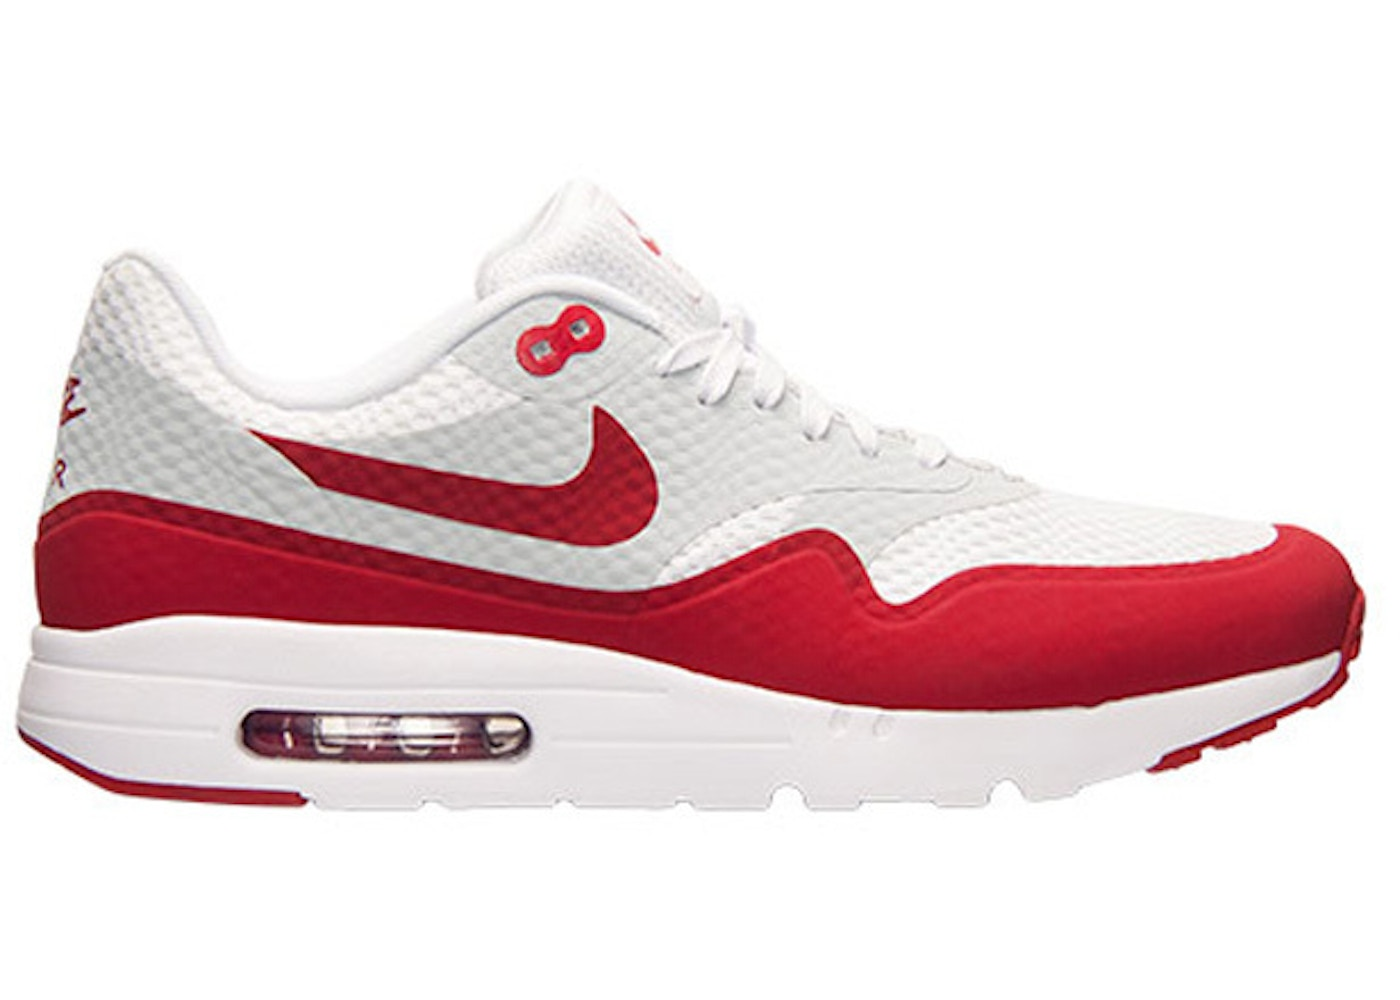 Encantador pompa Heredero  Nike Air Max 1 Varsity Red Ultra Essential (2015) - 819476-106